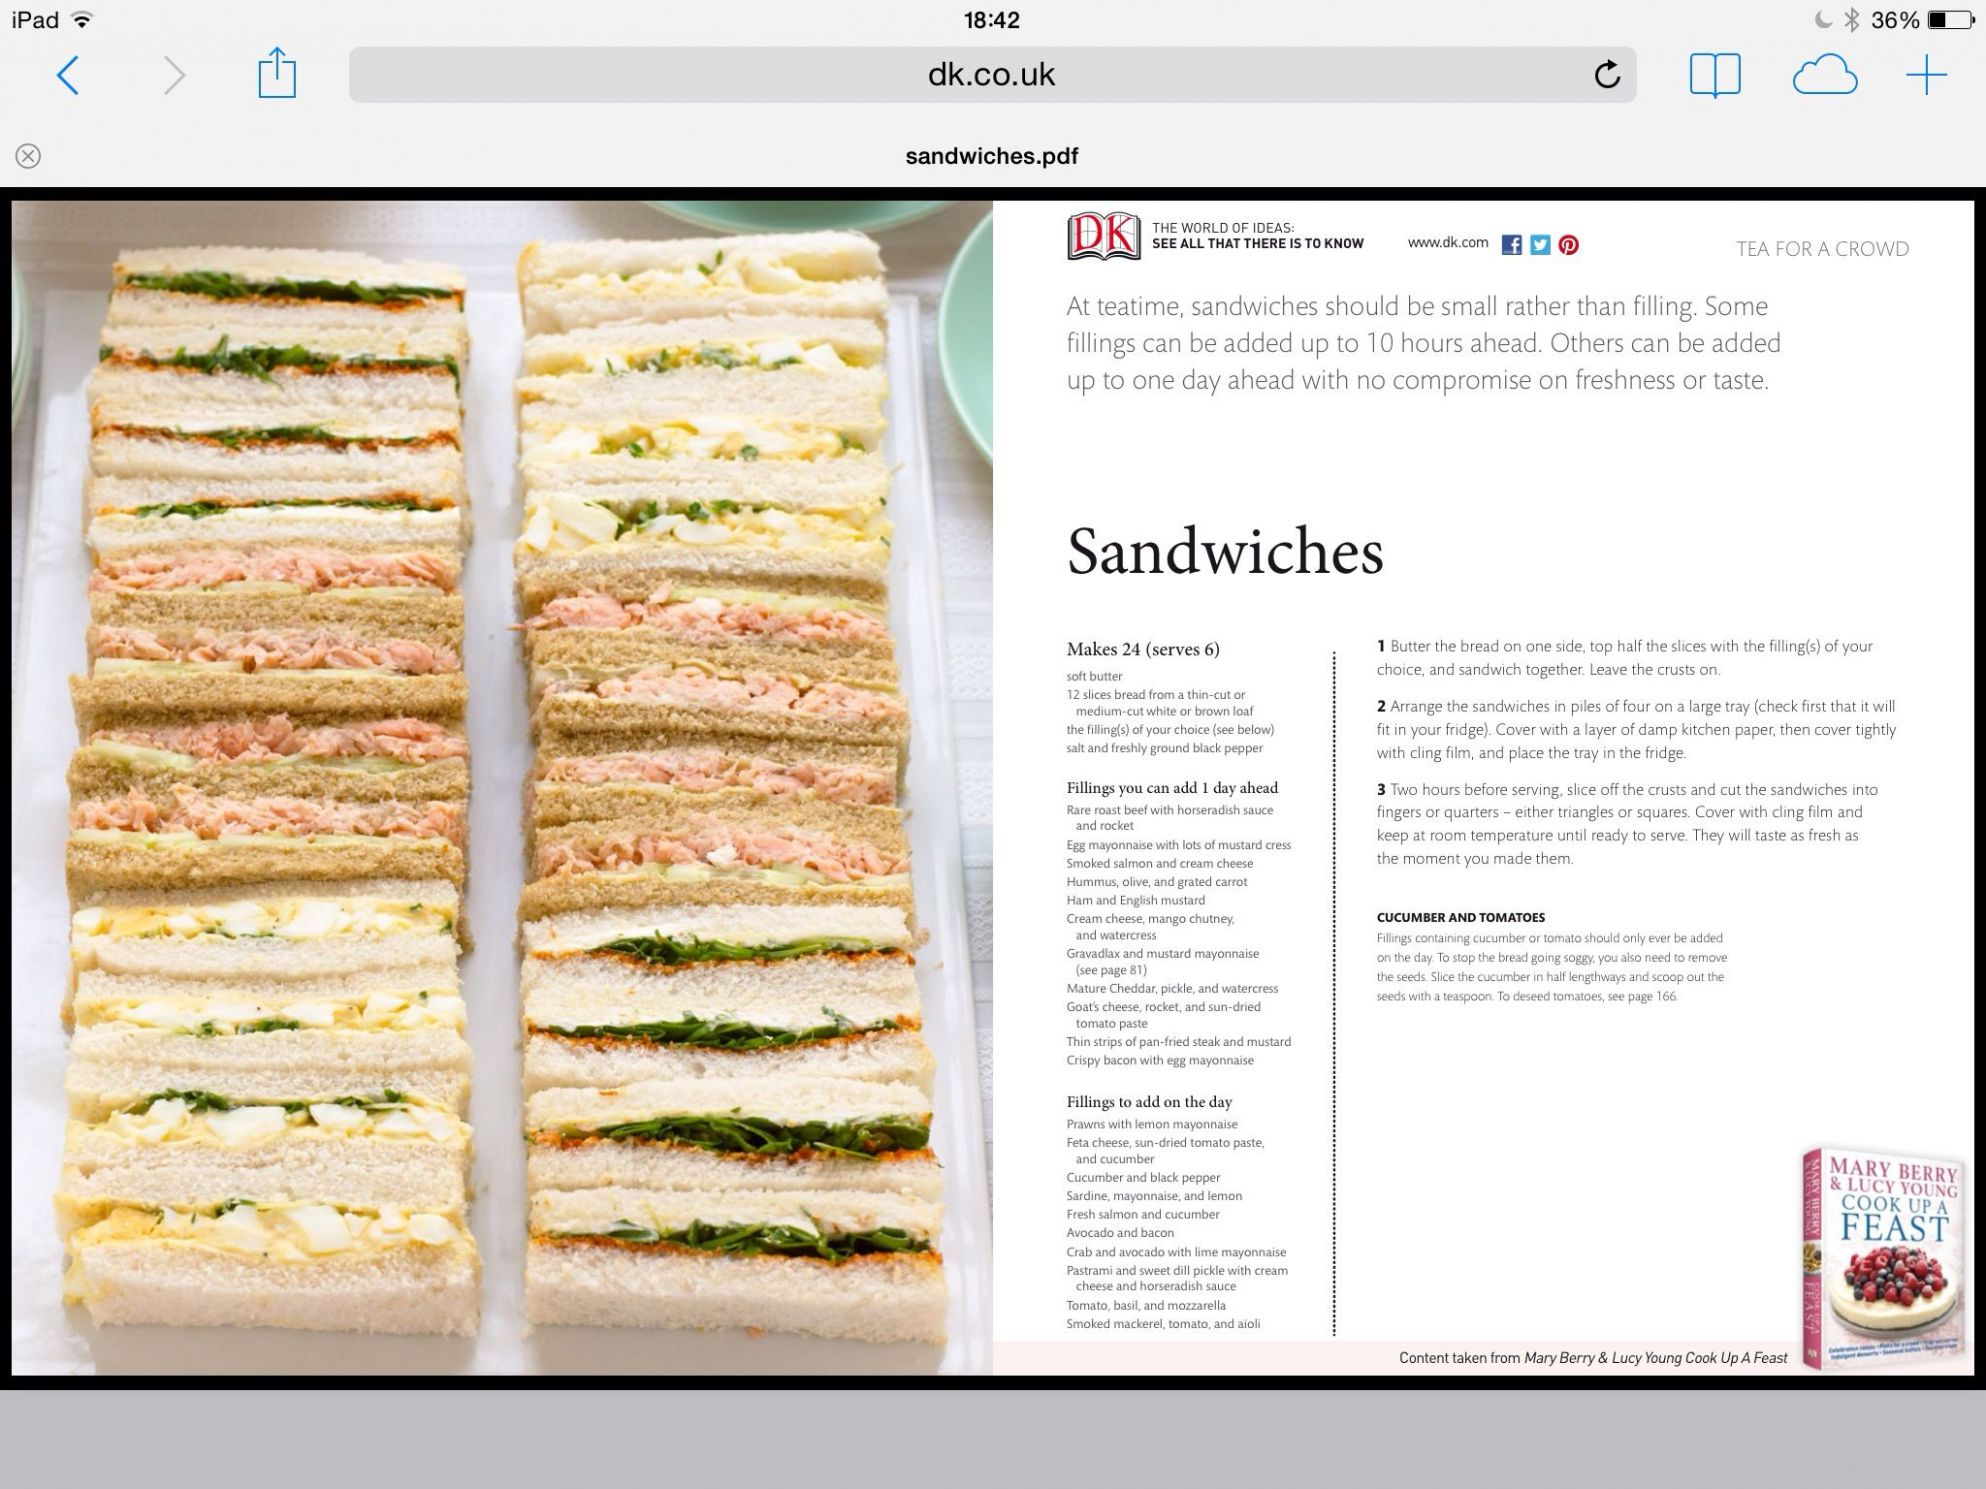 Mary Berry Tea Party Sandwiches | Mary berry sandwiches, Mary ..